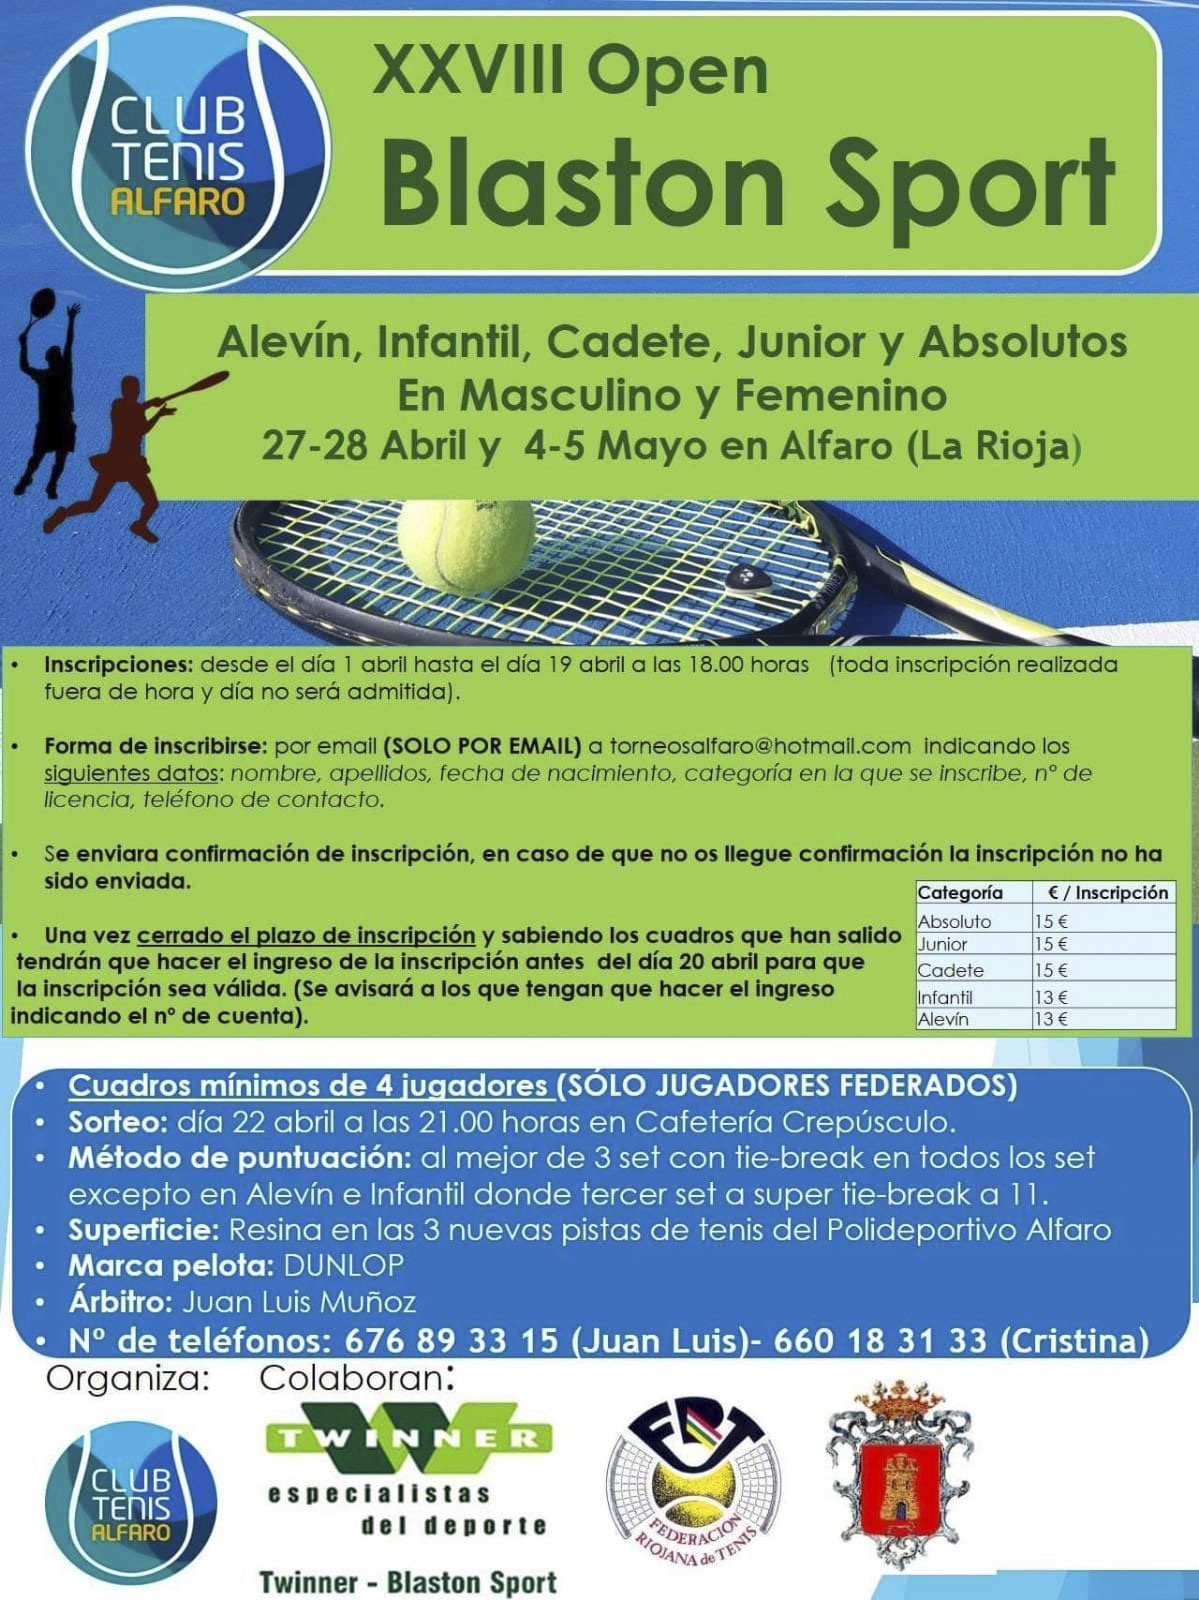 XXVIII Open Blaston Sport